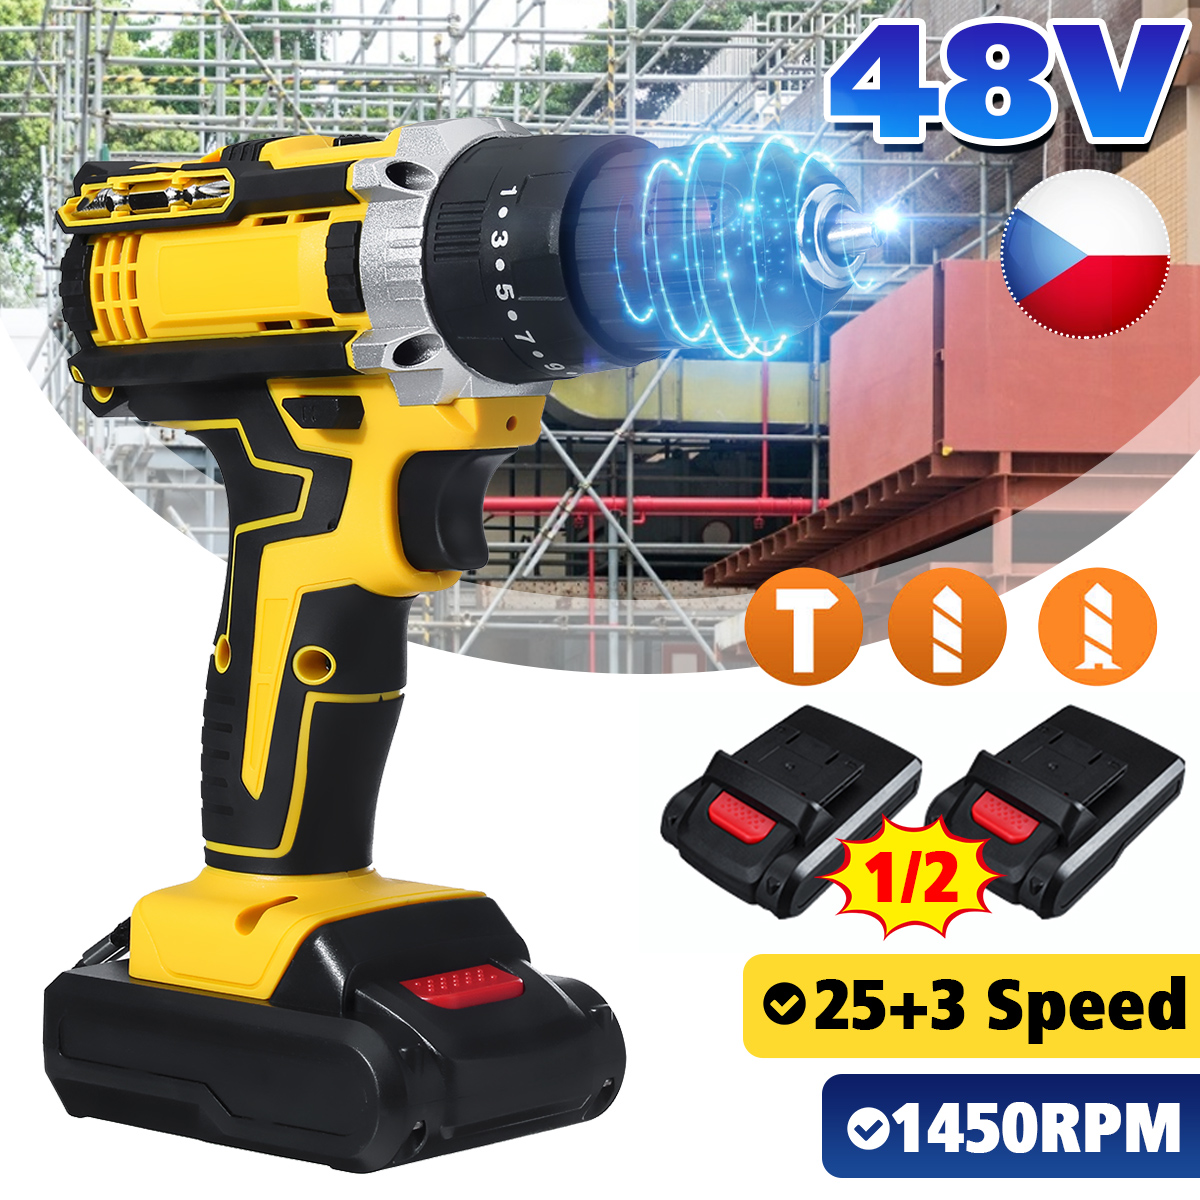 48V Cordless Drill Electric Screwdriver Mini Wireless Power Driver 25 3 Torque Cordless Impact Drill With 2 Lithium-Ion Battery